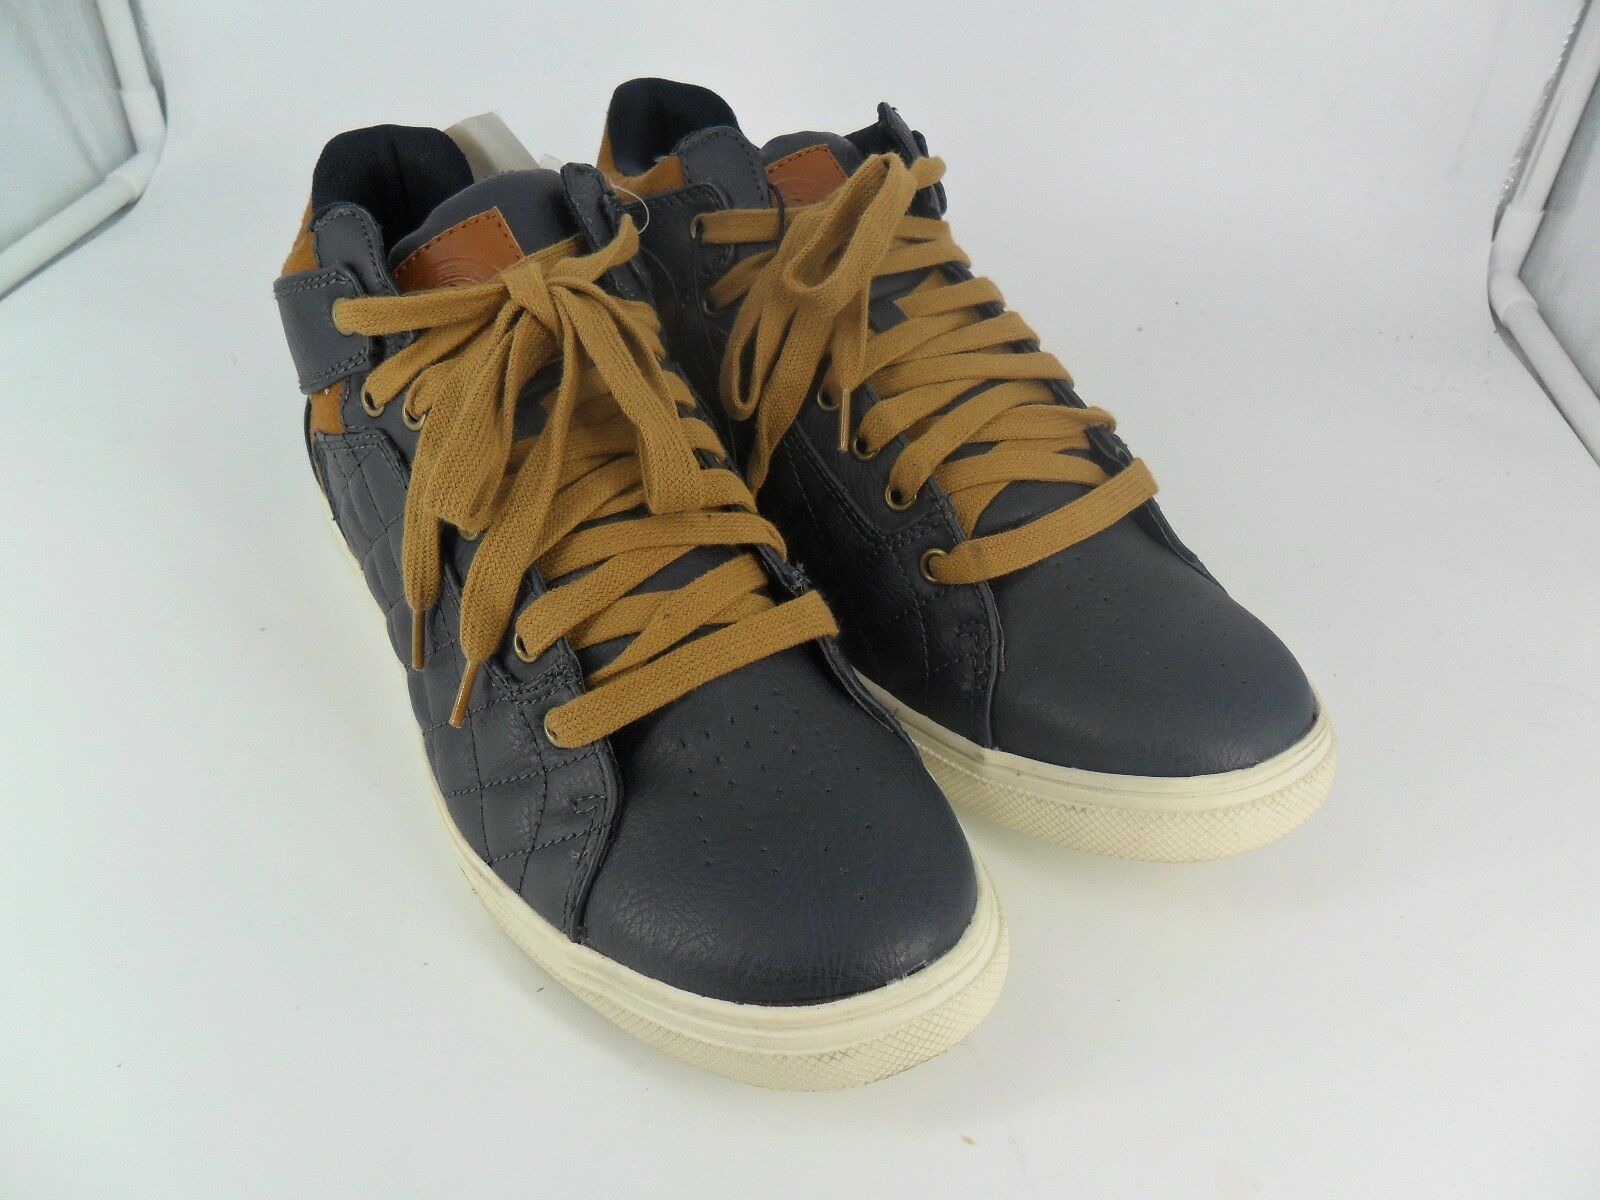 H&M Mens Casual Hi Top Trainers Navy LN077 MM 02 SALEx